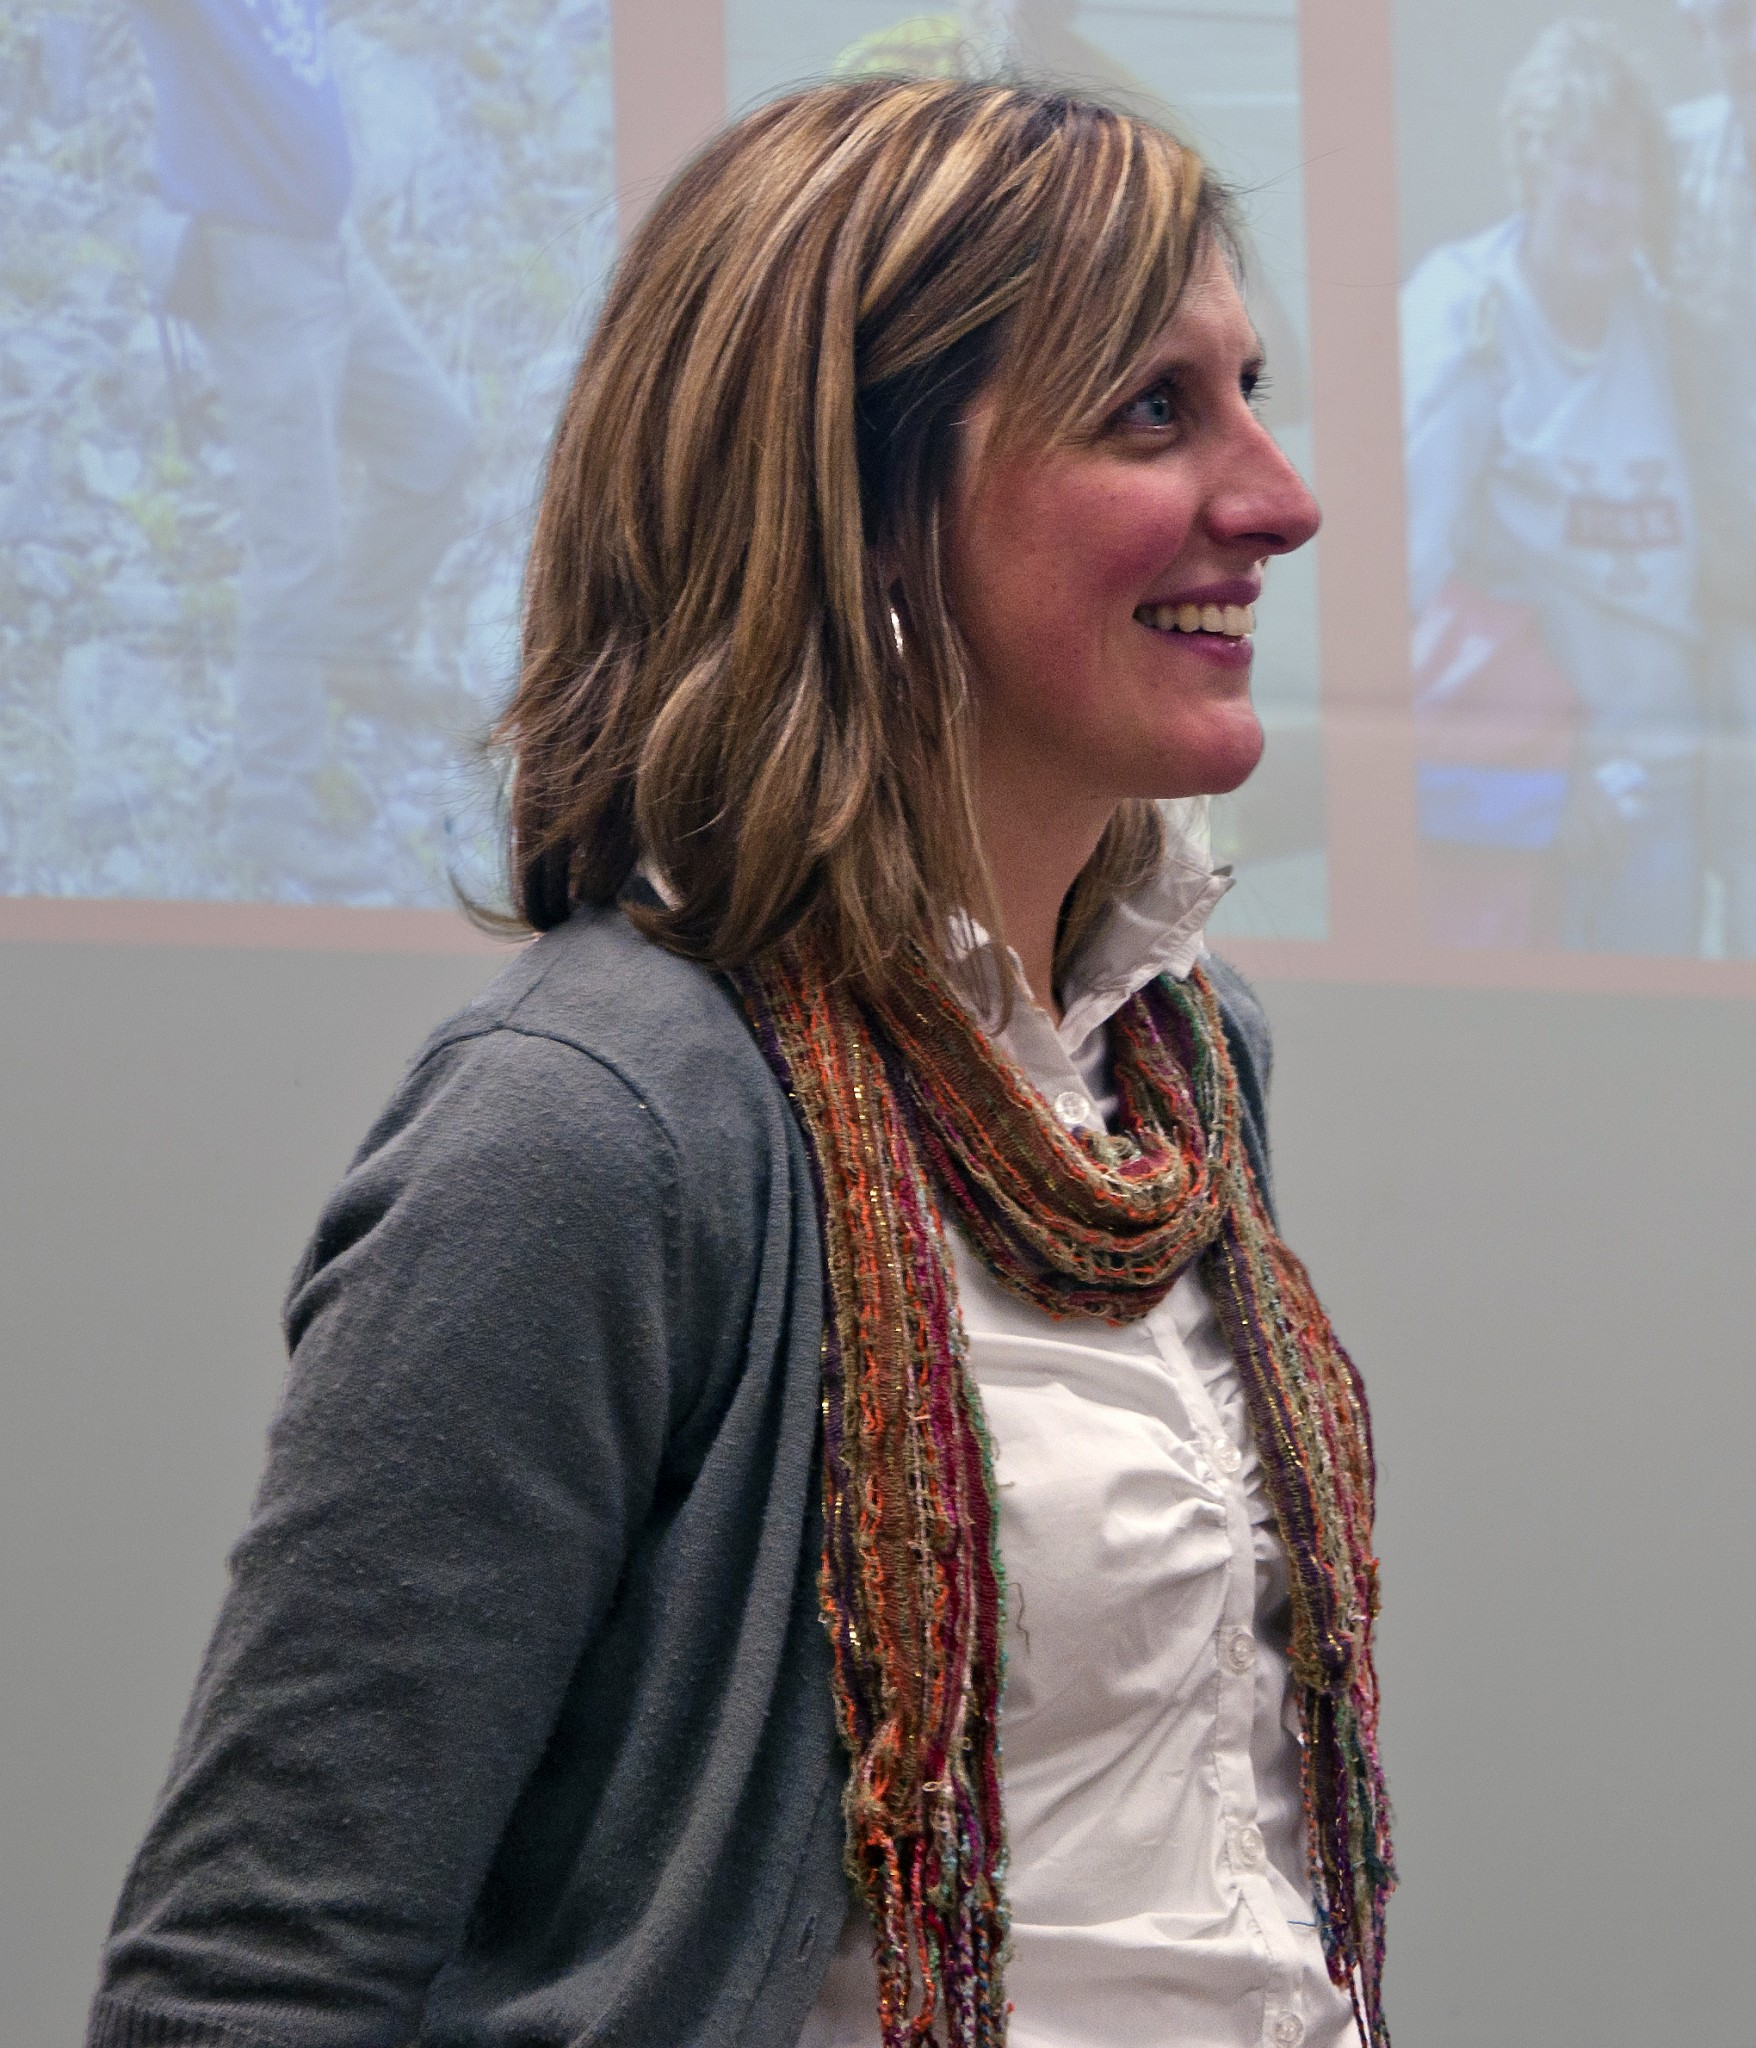 Leigh Anne Isaac presenting a seminar to a group of students Jan. 31 - Photo by Mark Hendricks